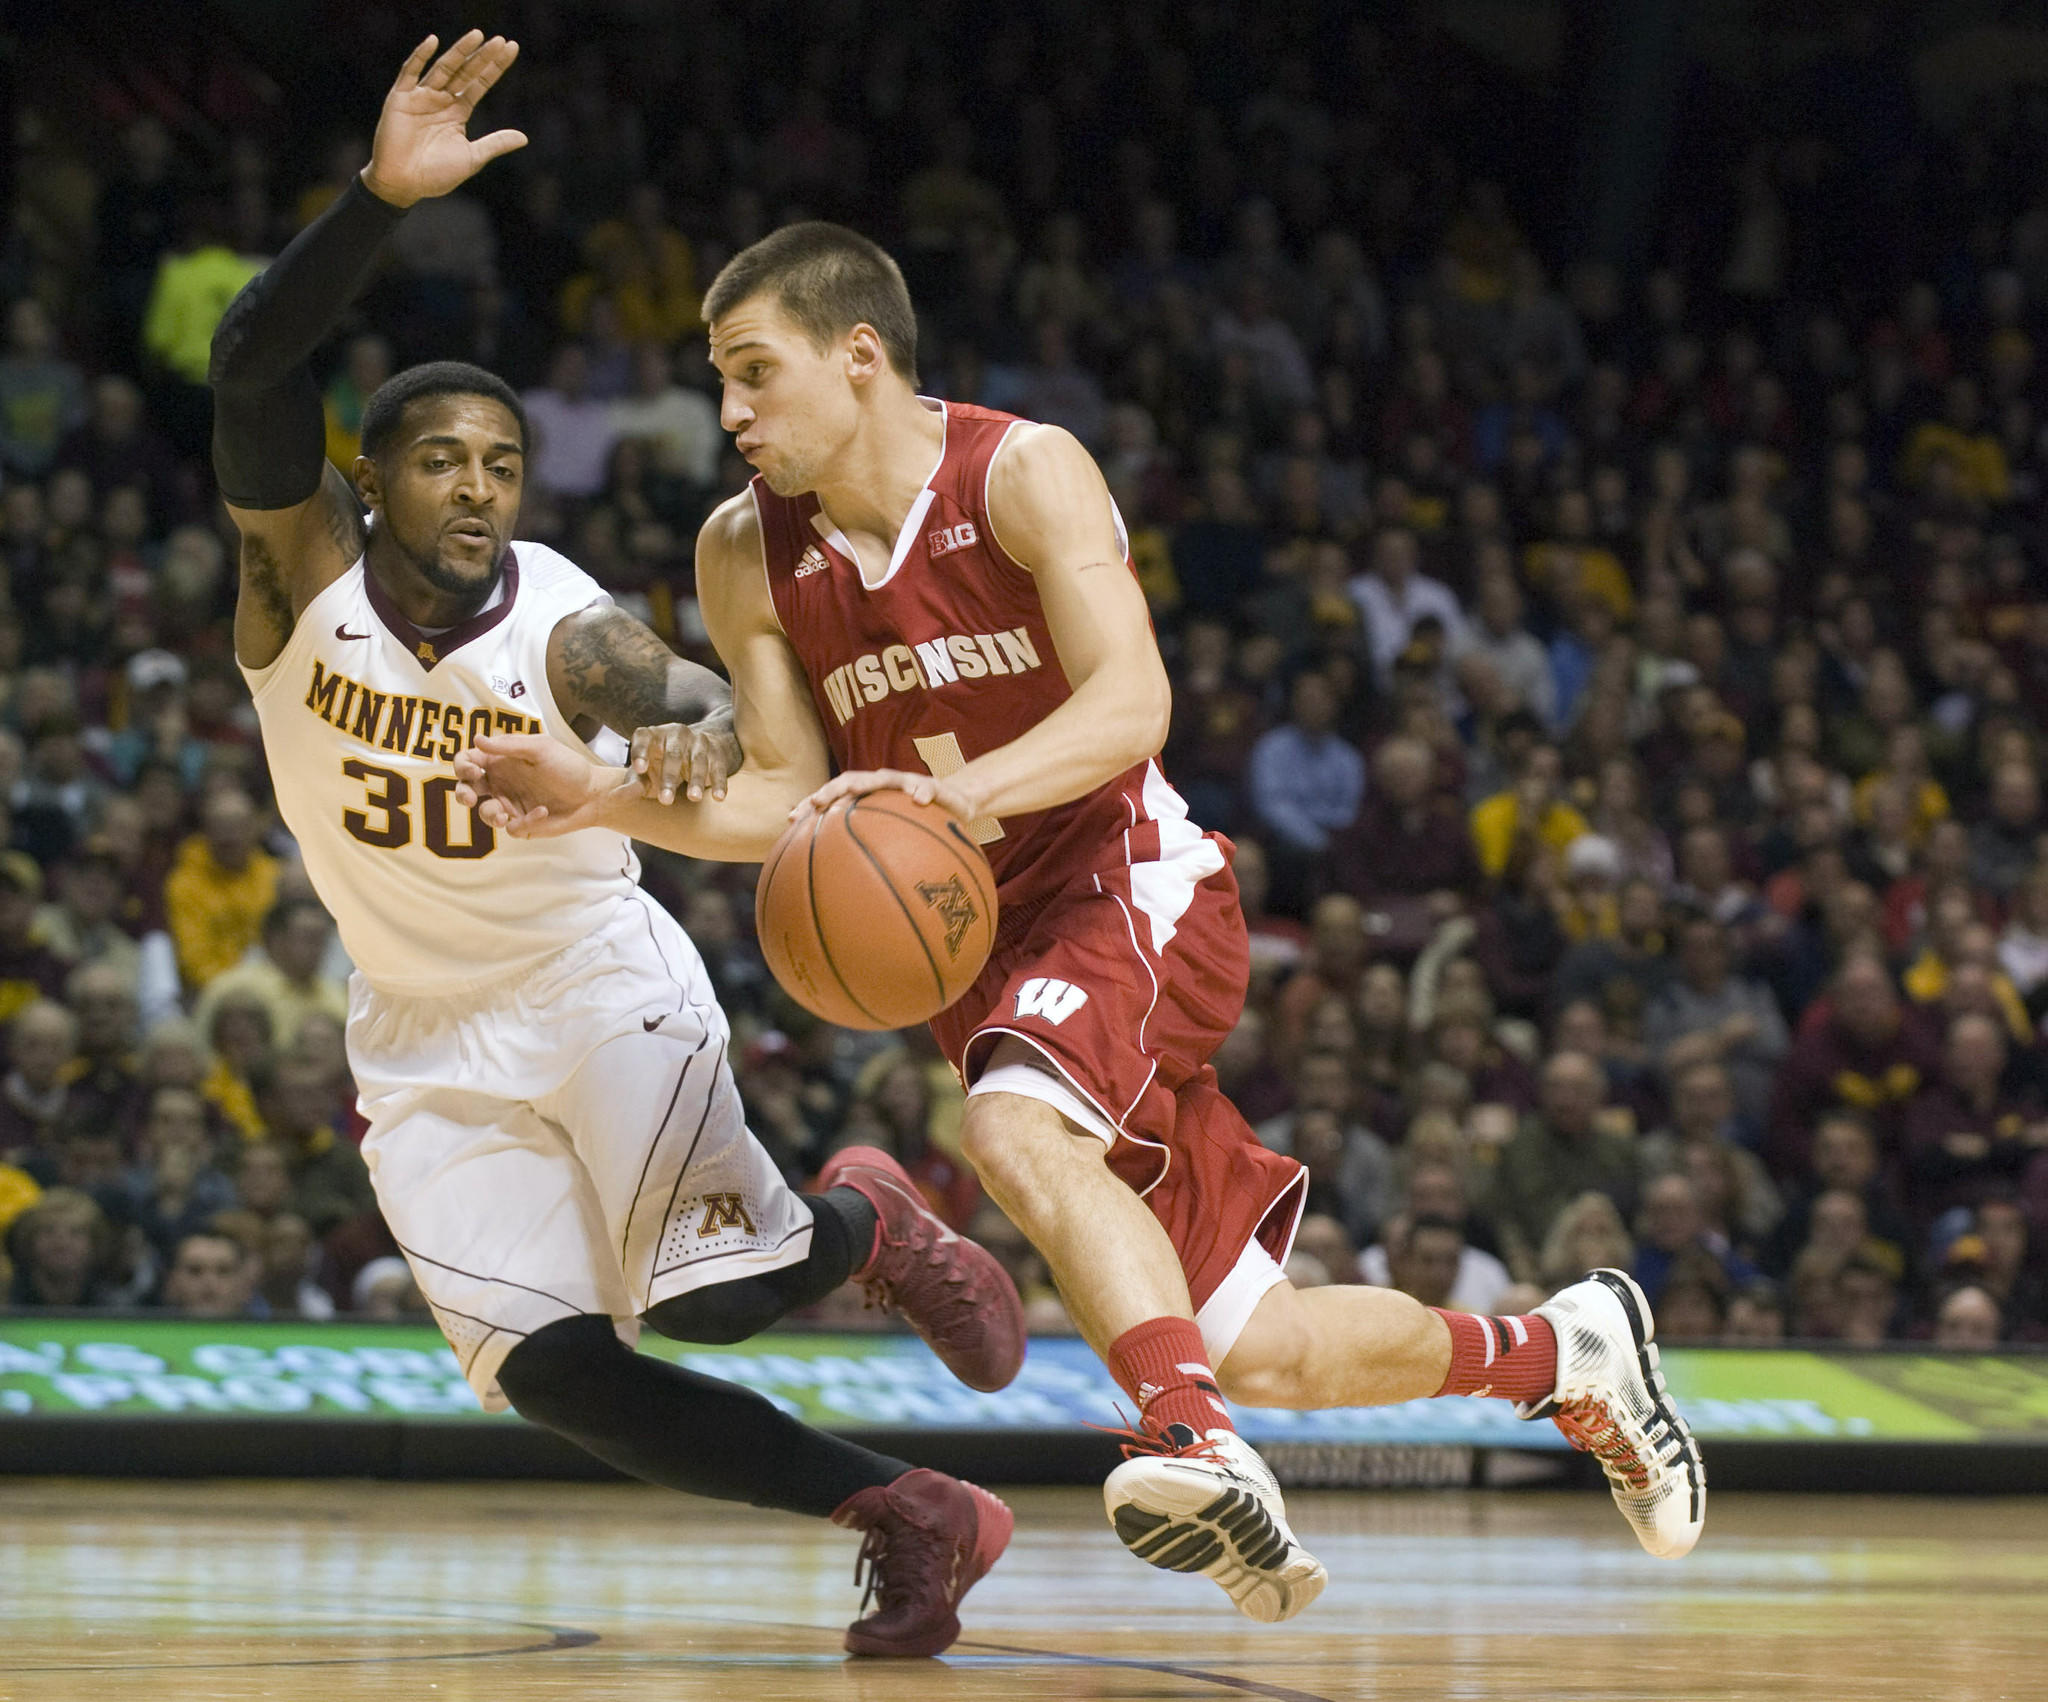 Wisconsin's Ben Brust drives to the basket around Minnesota's Malik Smith in the first half.